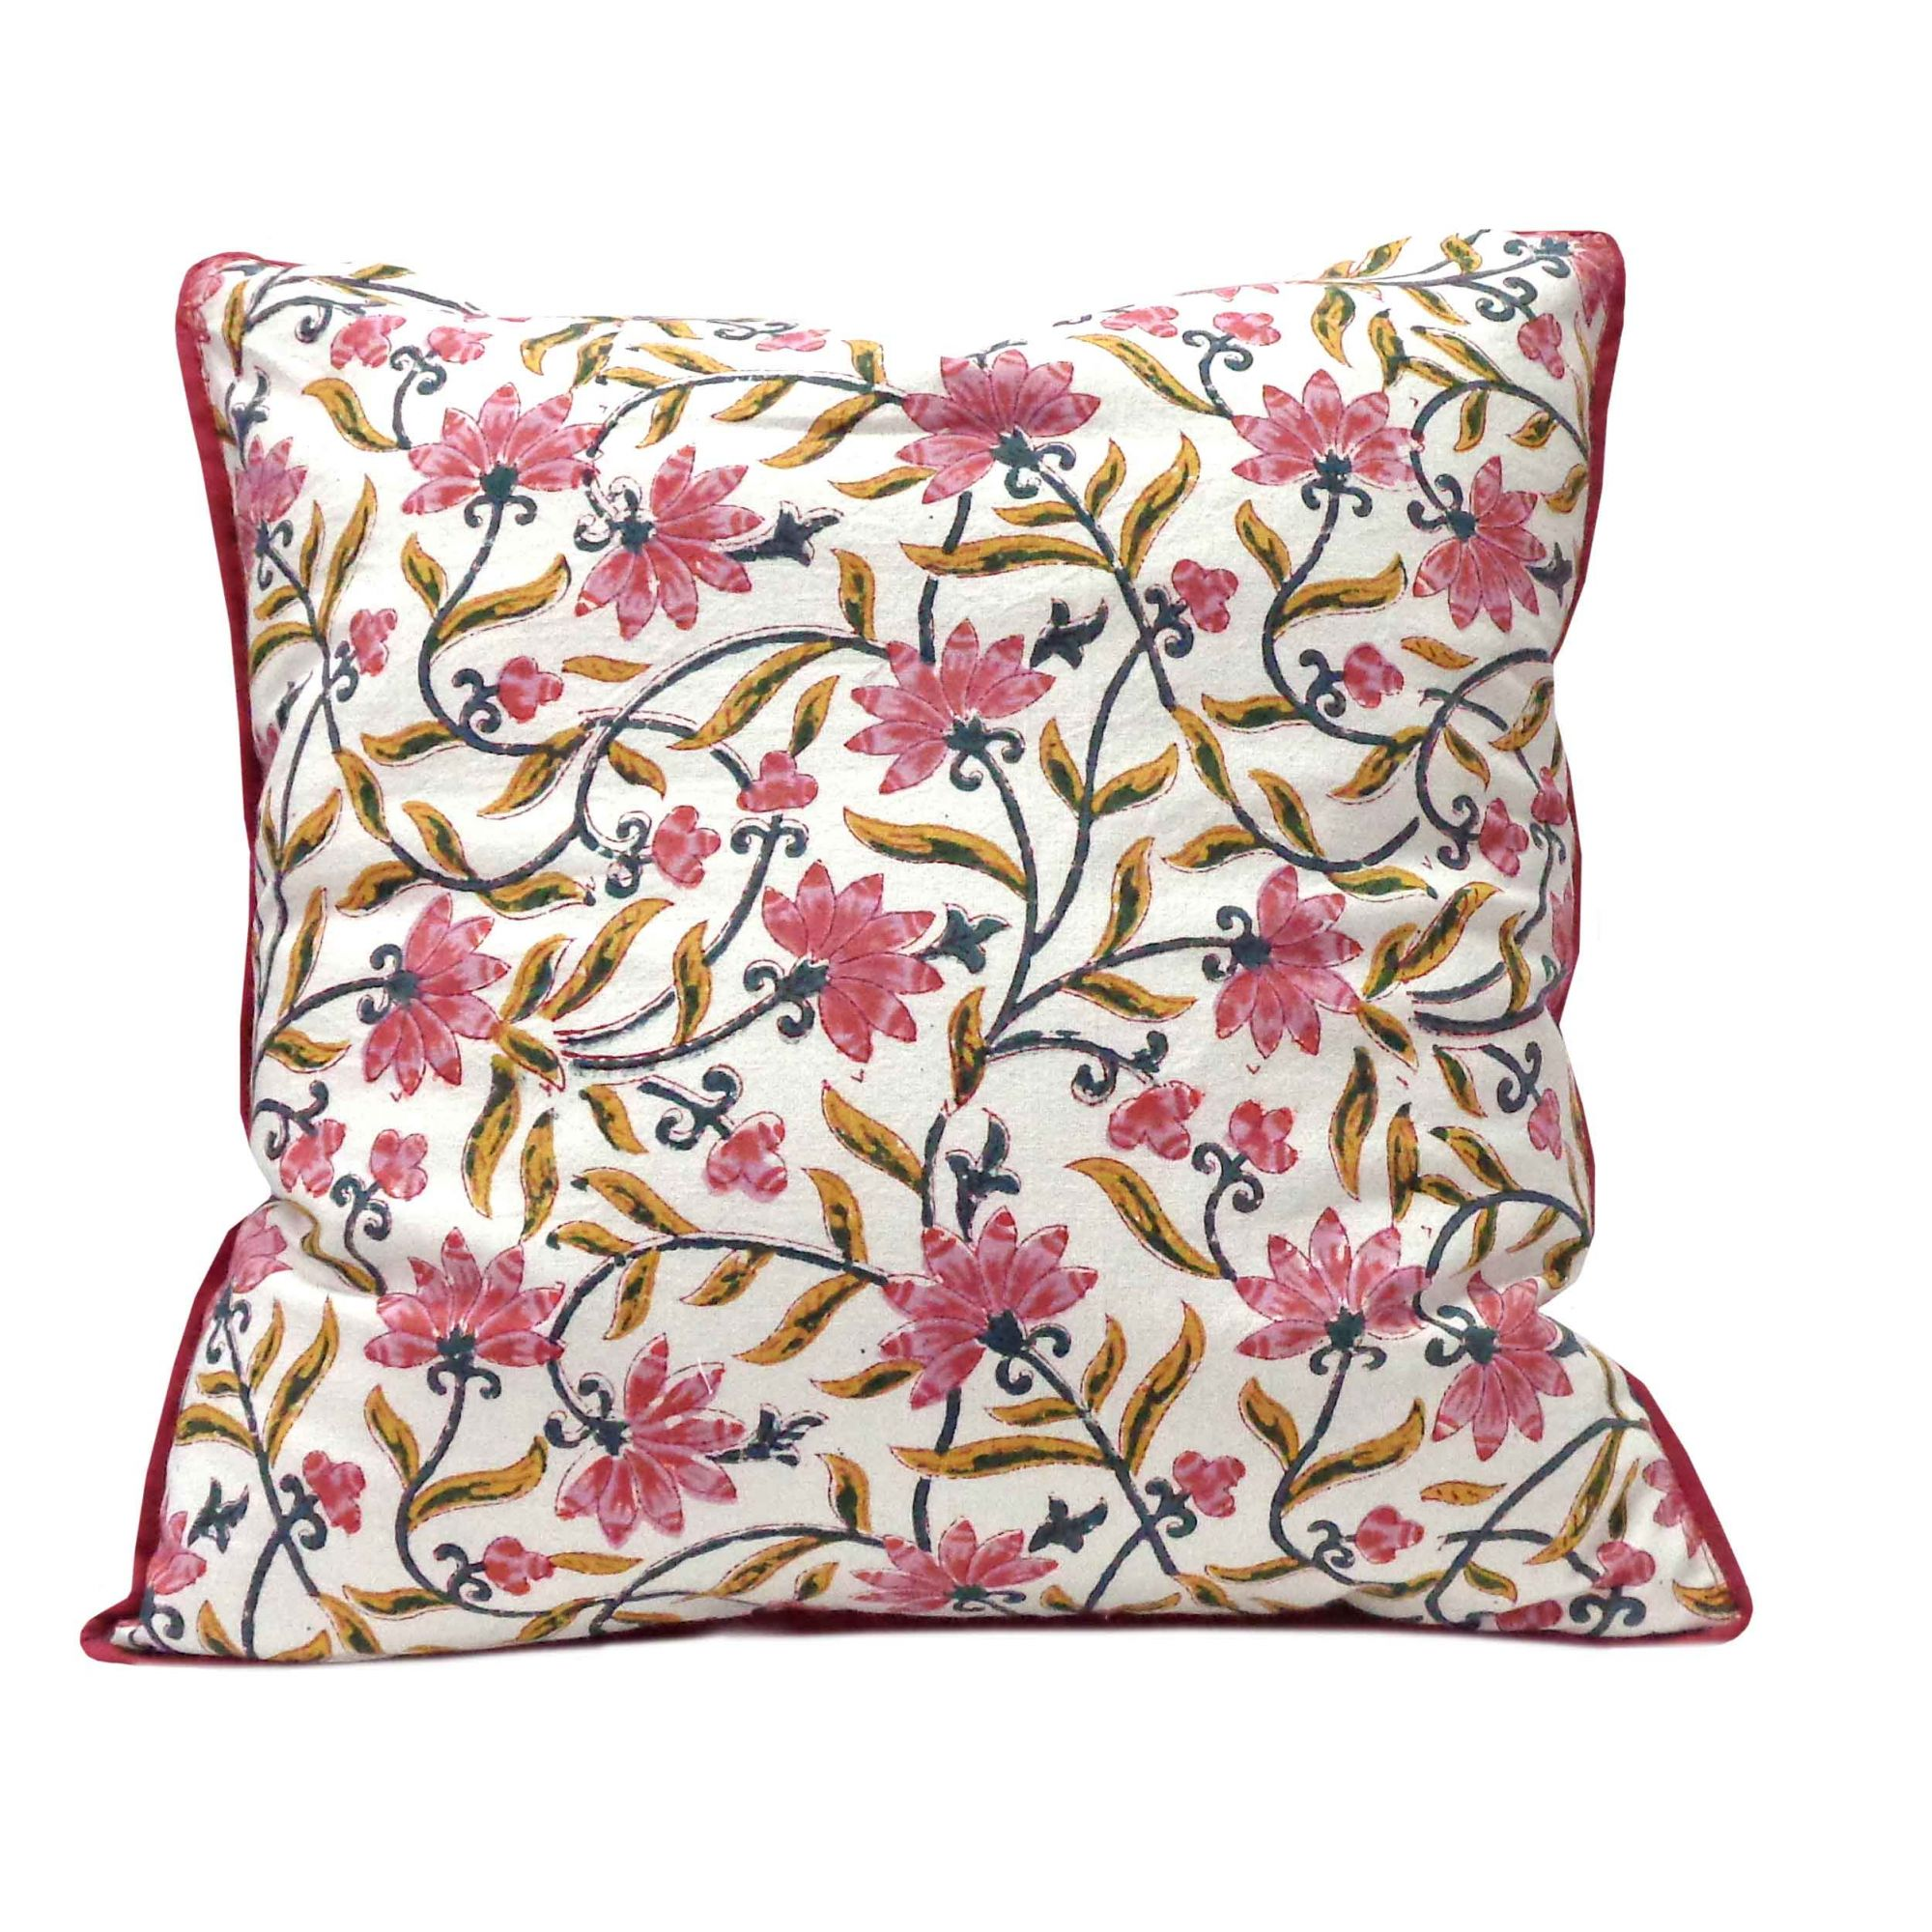 Hand Block Printed Cotton Cushion Cover 40x40 cms | 101093